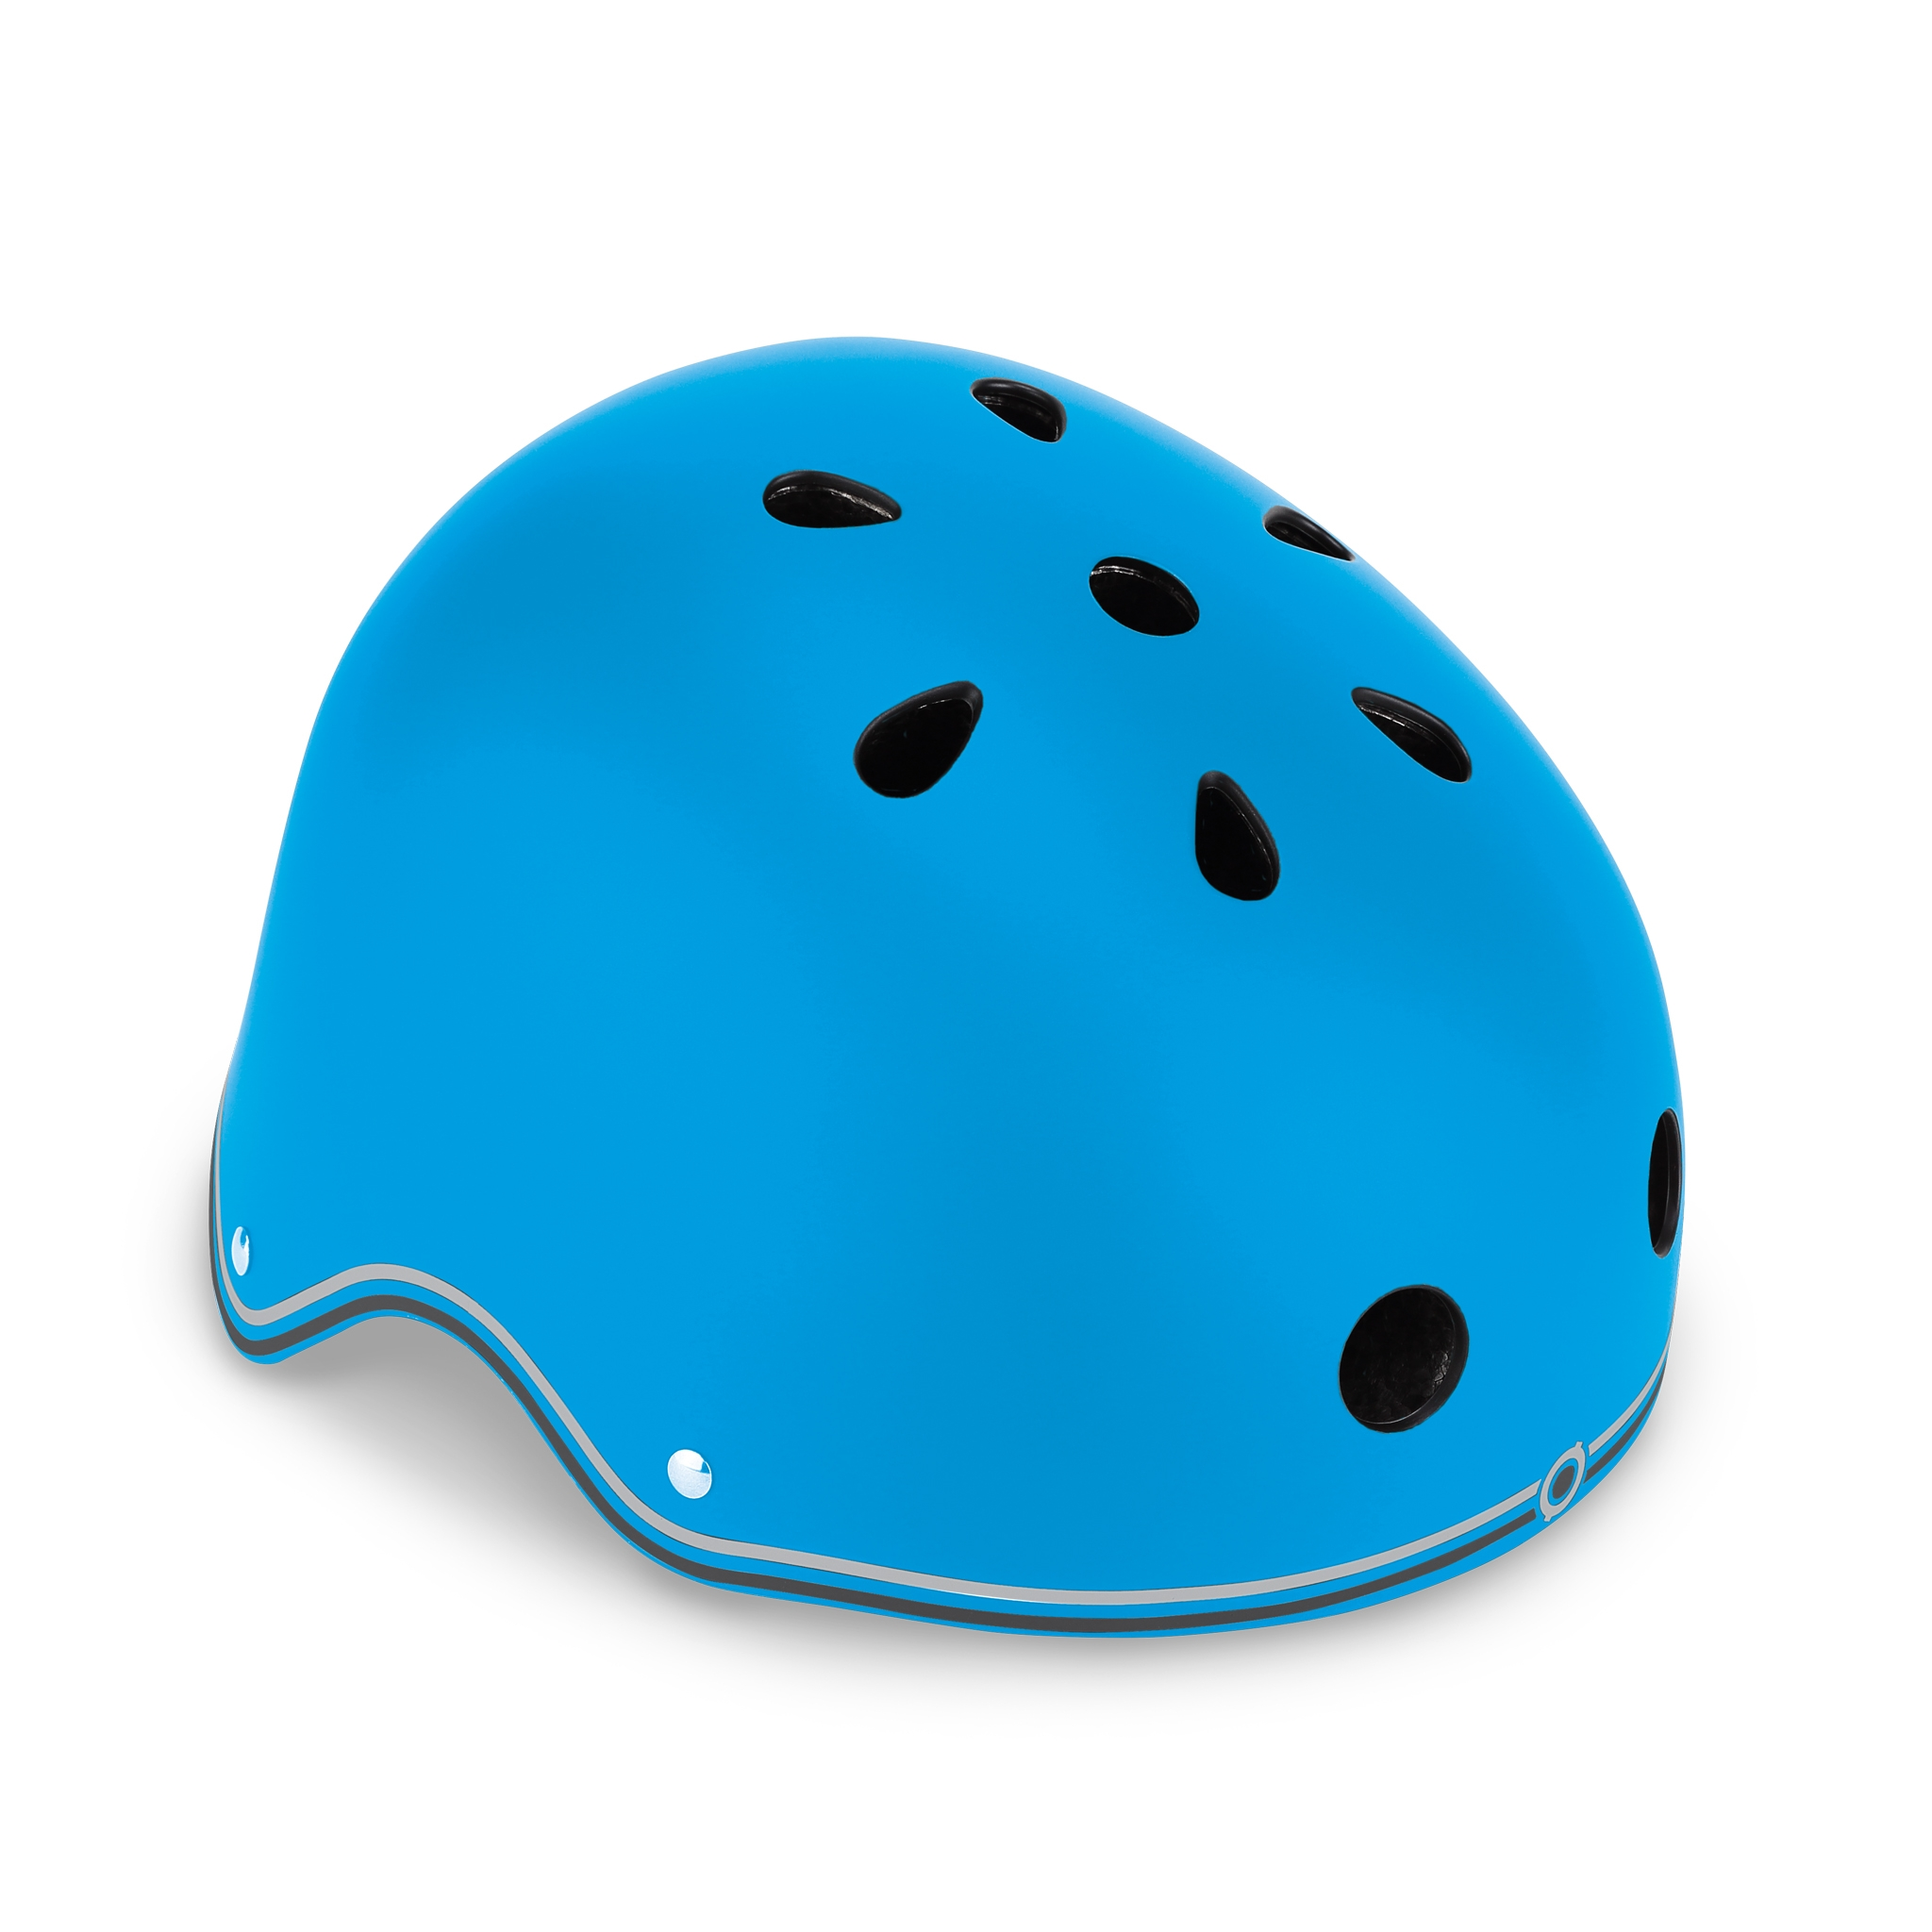 PRIMO-helmets-scooter-helmets-for-kids-in-mold-polycarbonate-outer-shell-sky-blue